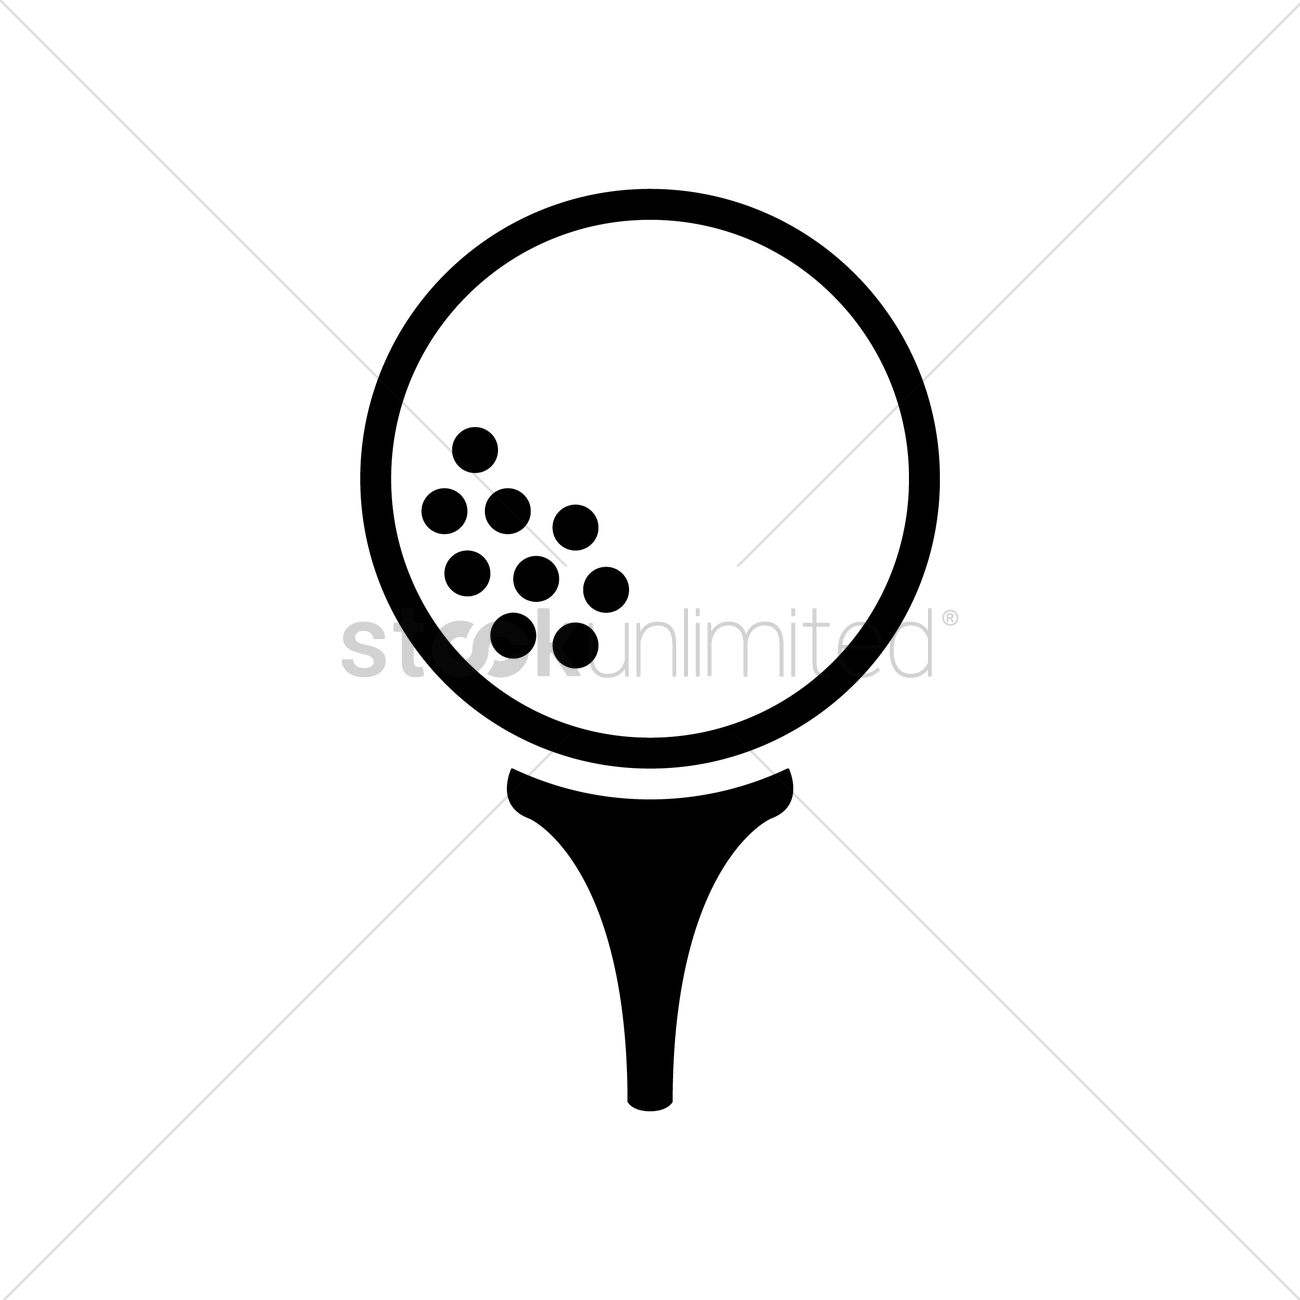 Free Golf Ball On Tee Vector Image